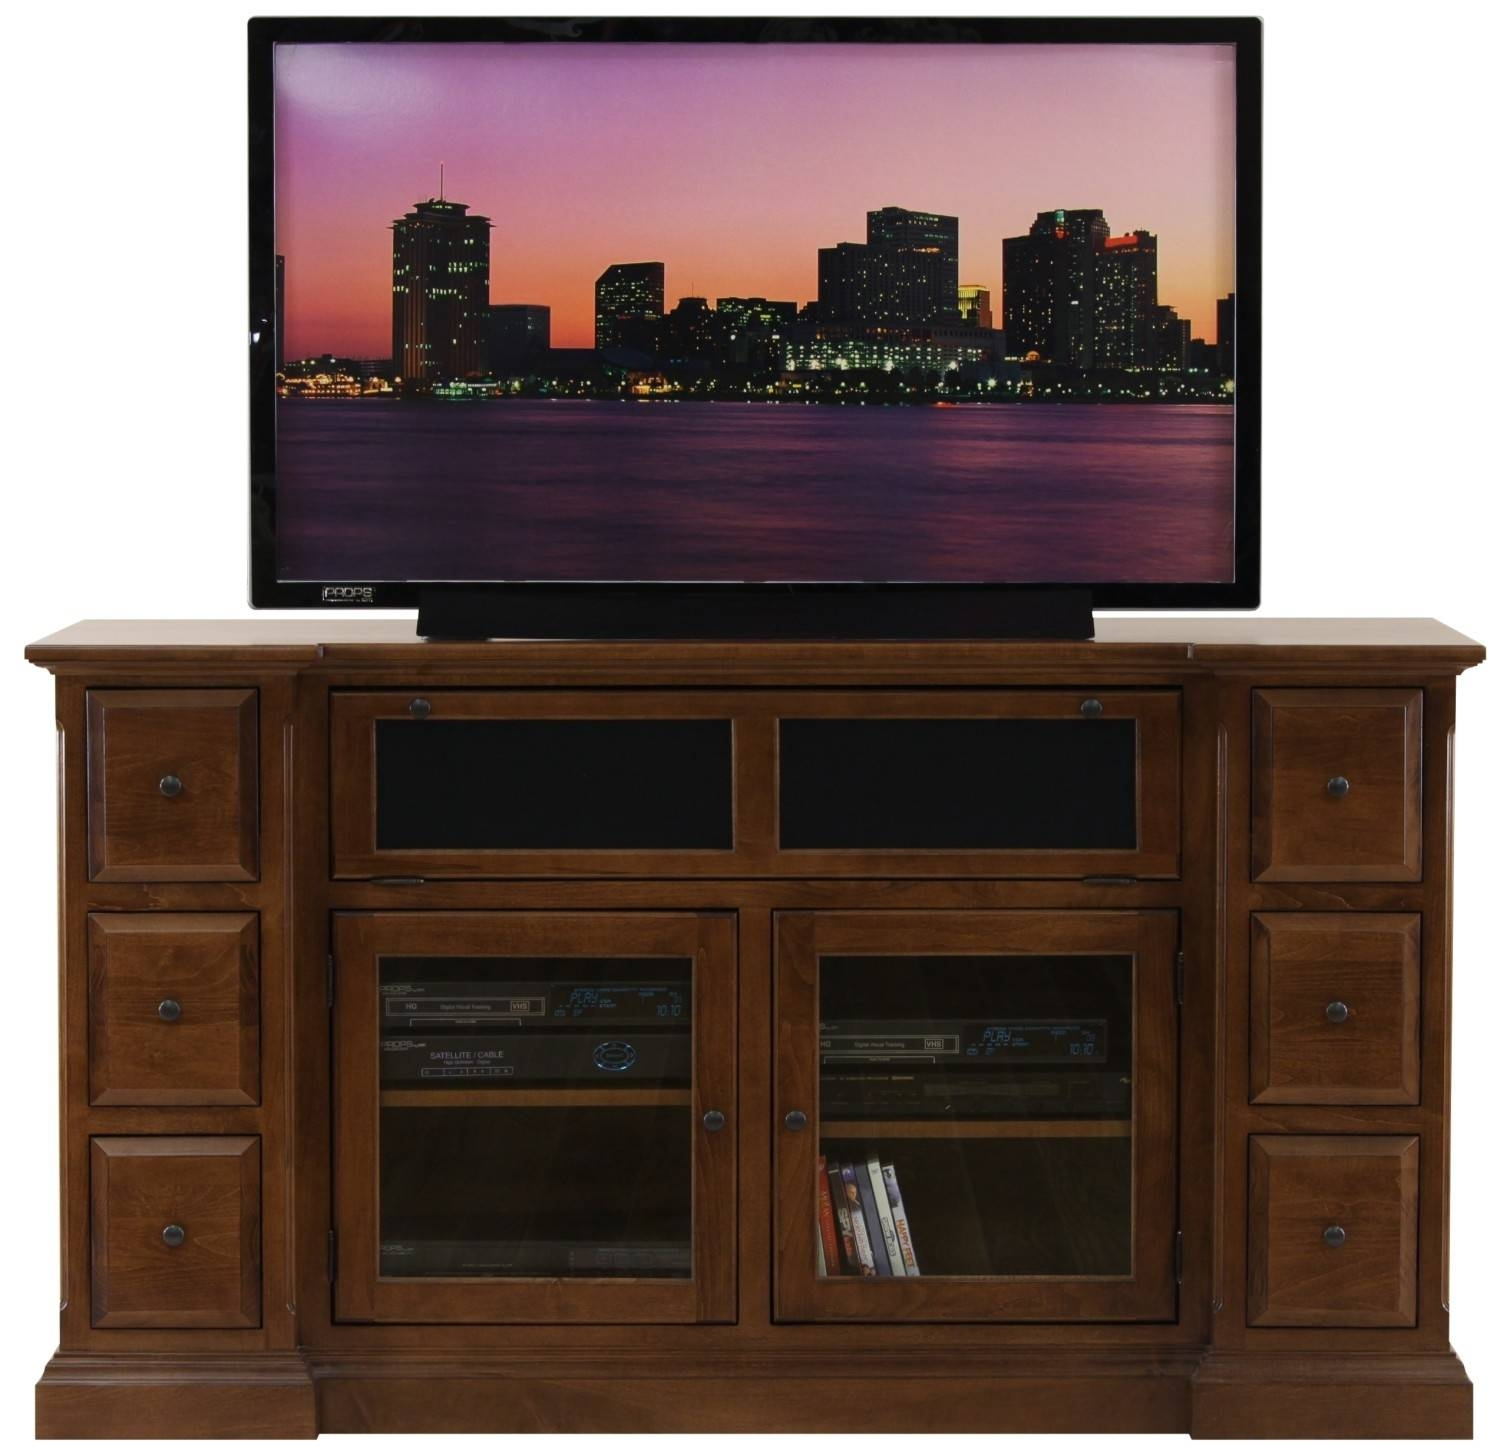 Fresh Denver Cherry Wood Tv Stand Walmart #17102 regarding Wood Tv Entertainment Stands (Image 4 of 15)